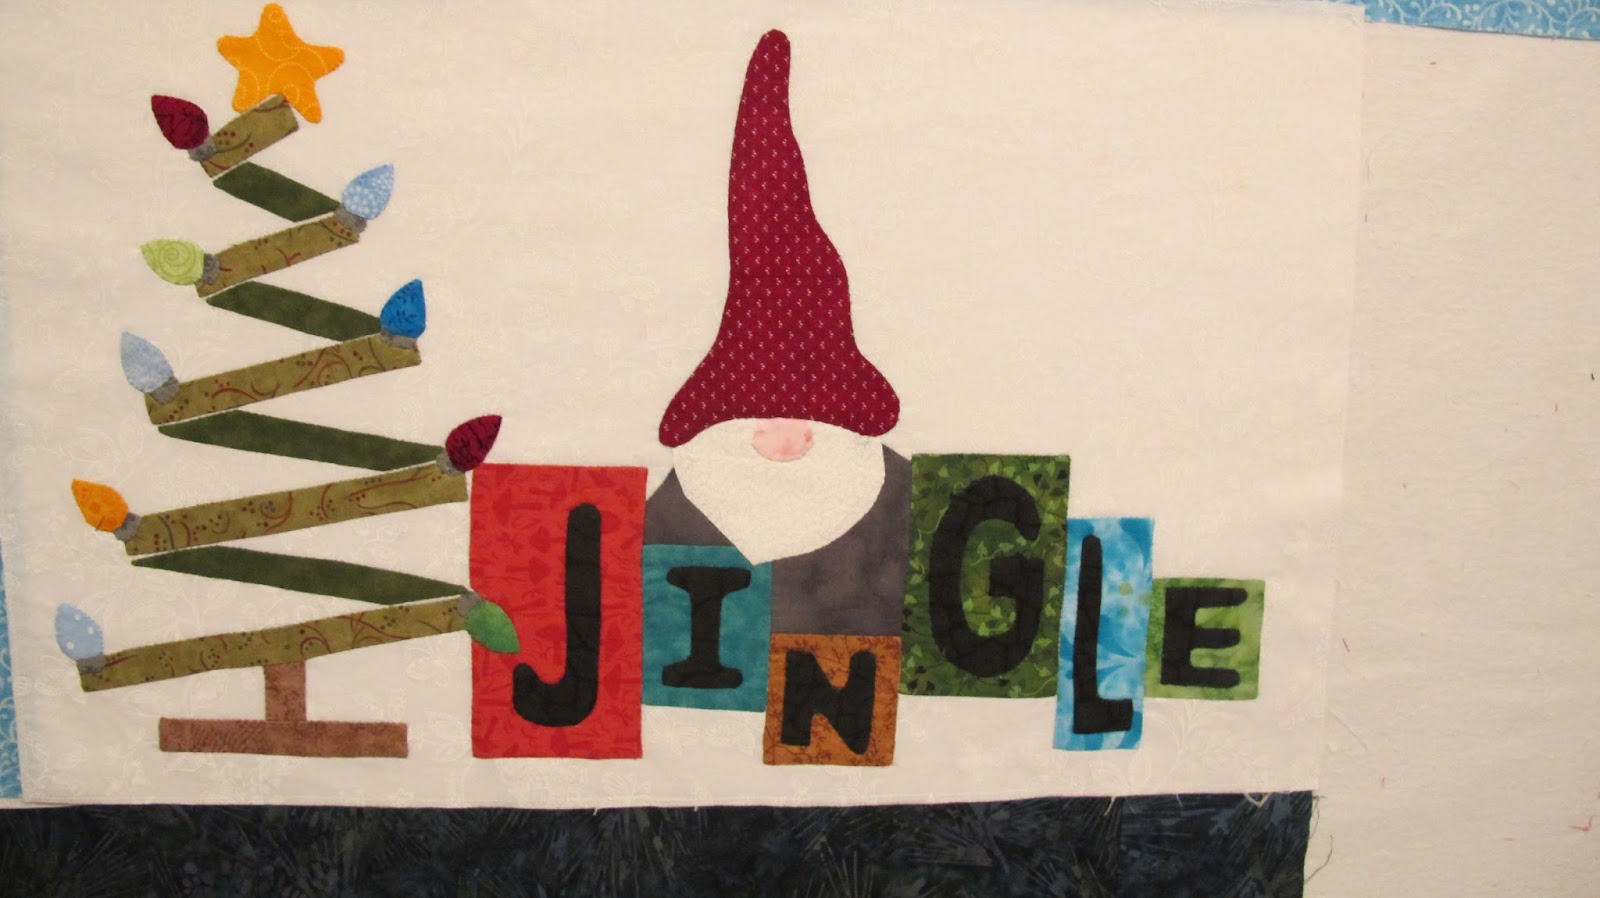 Mm mm felt applique christmas tree feltie clippitybits